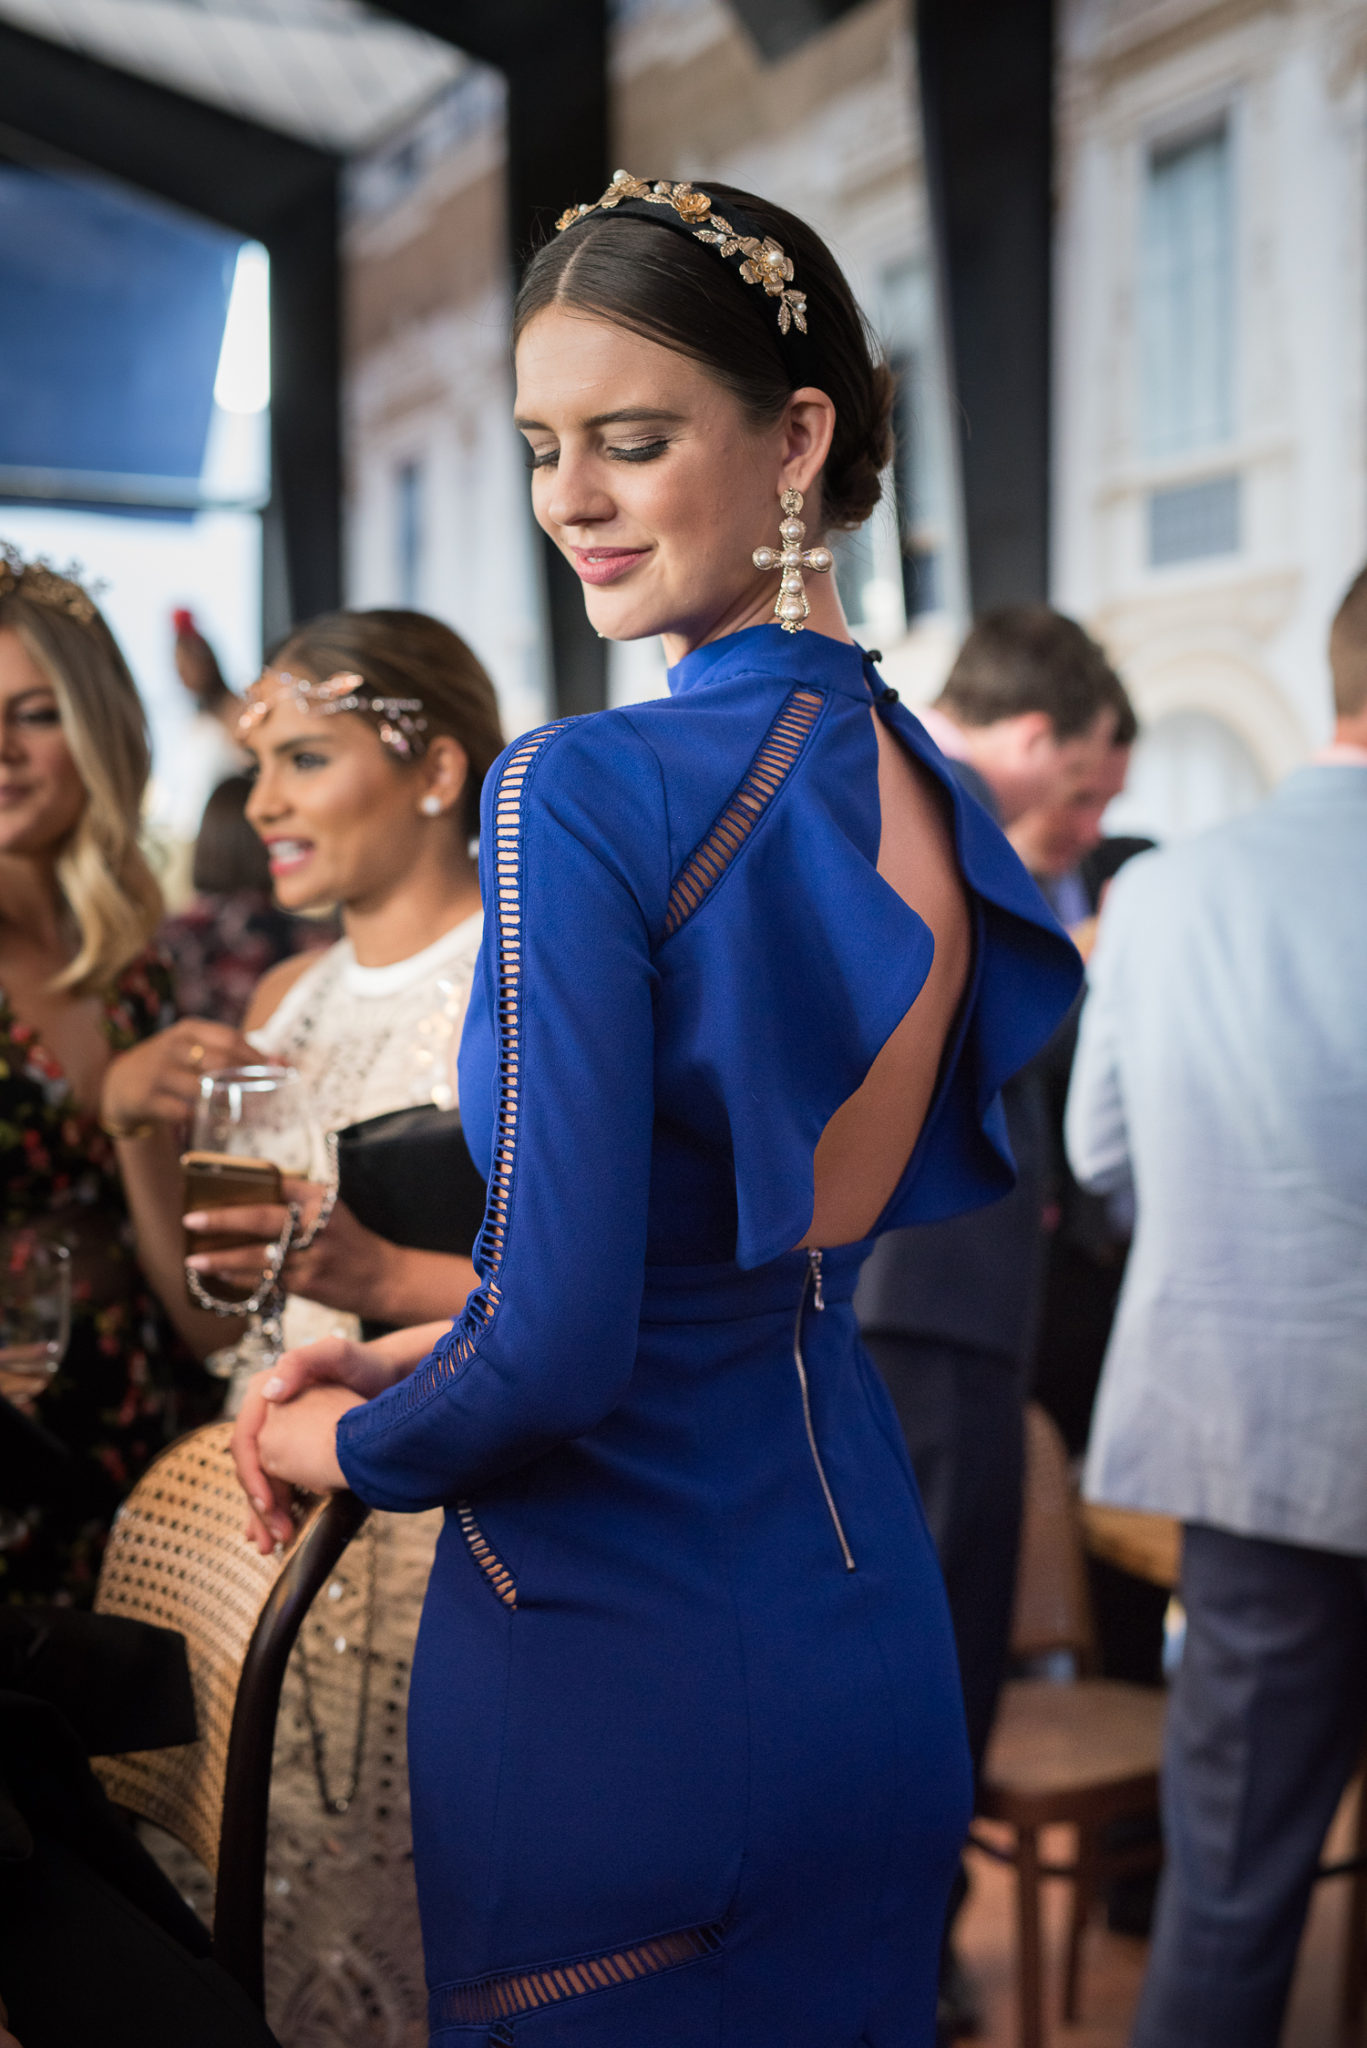 melbourne-cup-day-lavazza-whatwouldkarldo_0054